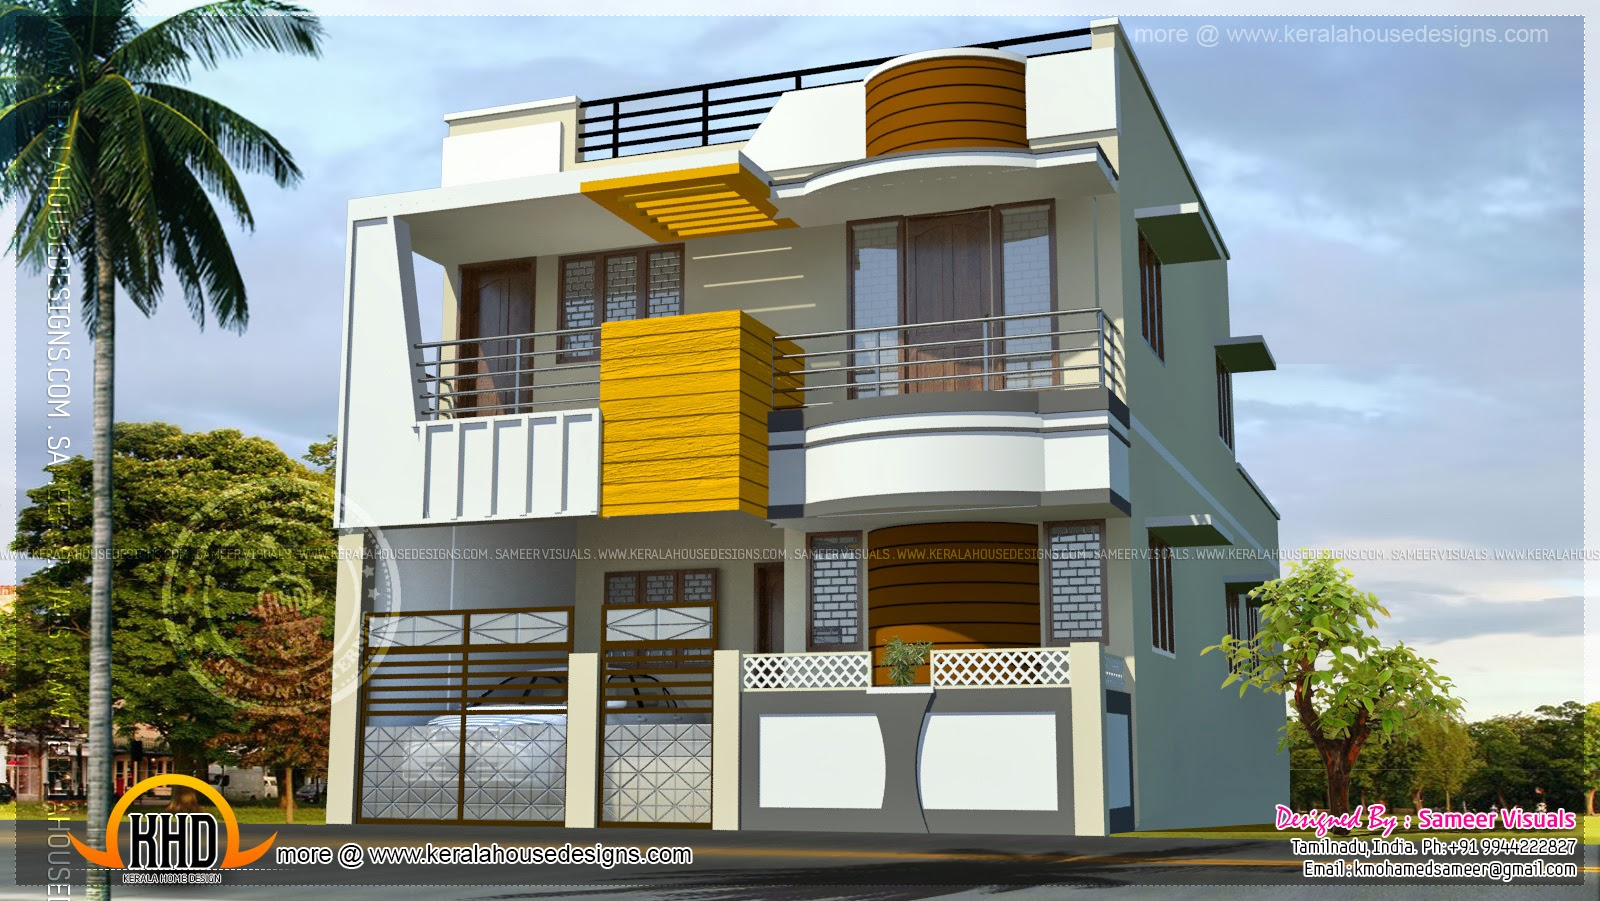 Double storied modern south indian home kerala home Homes design images india